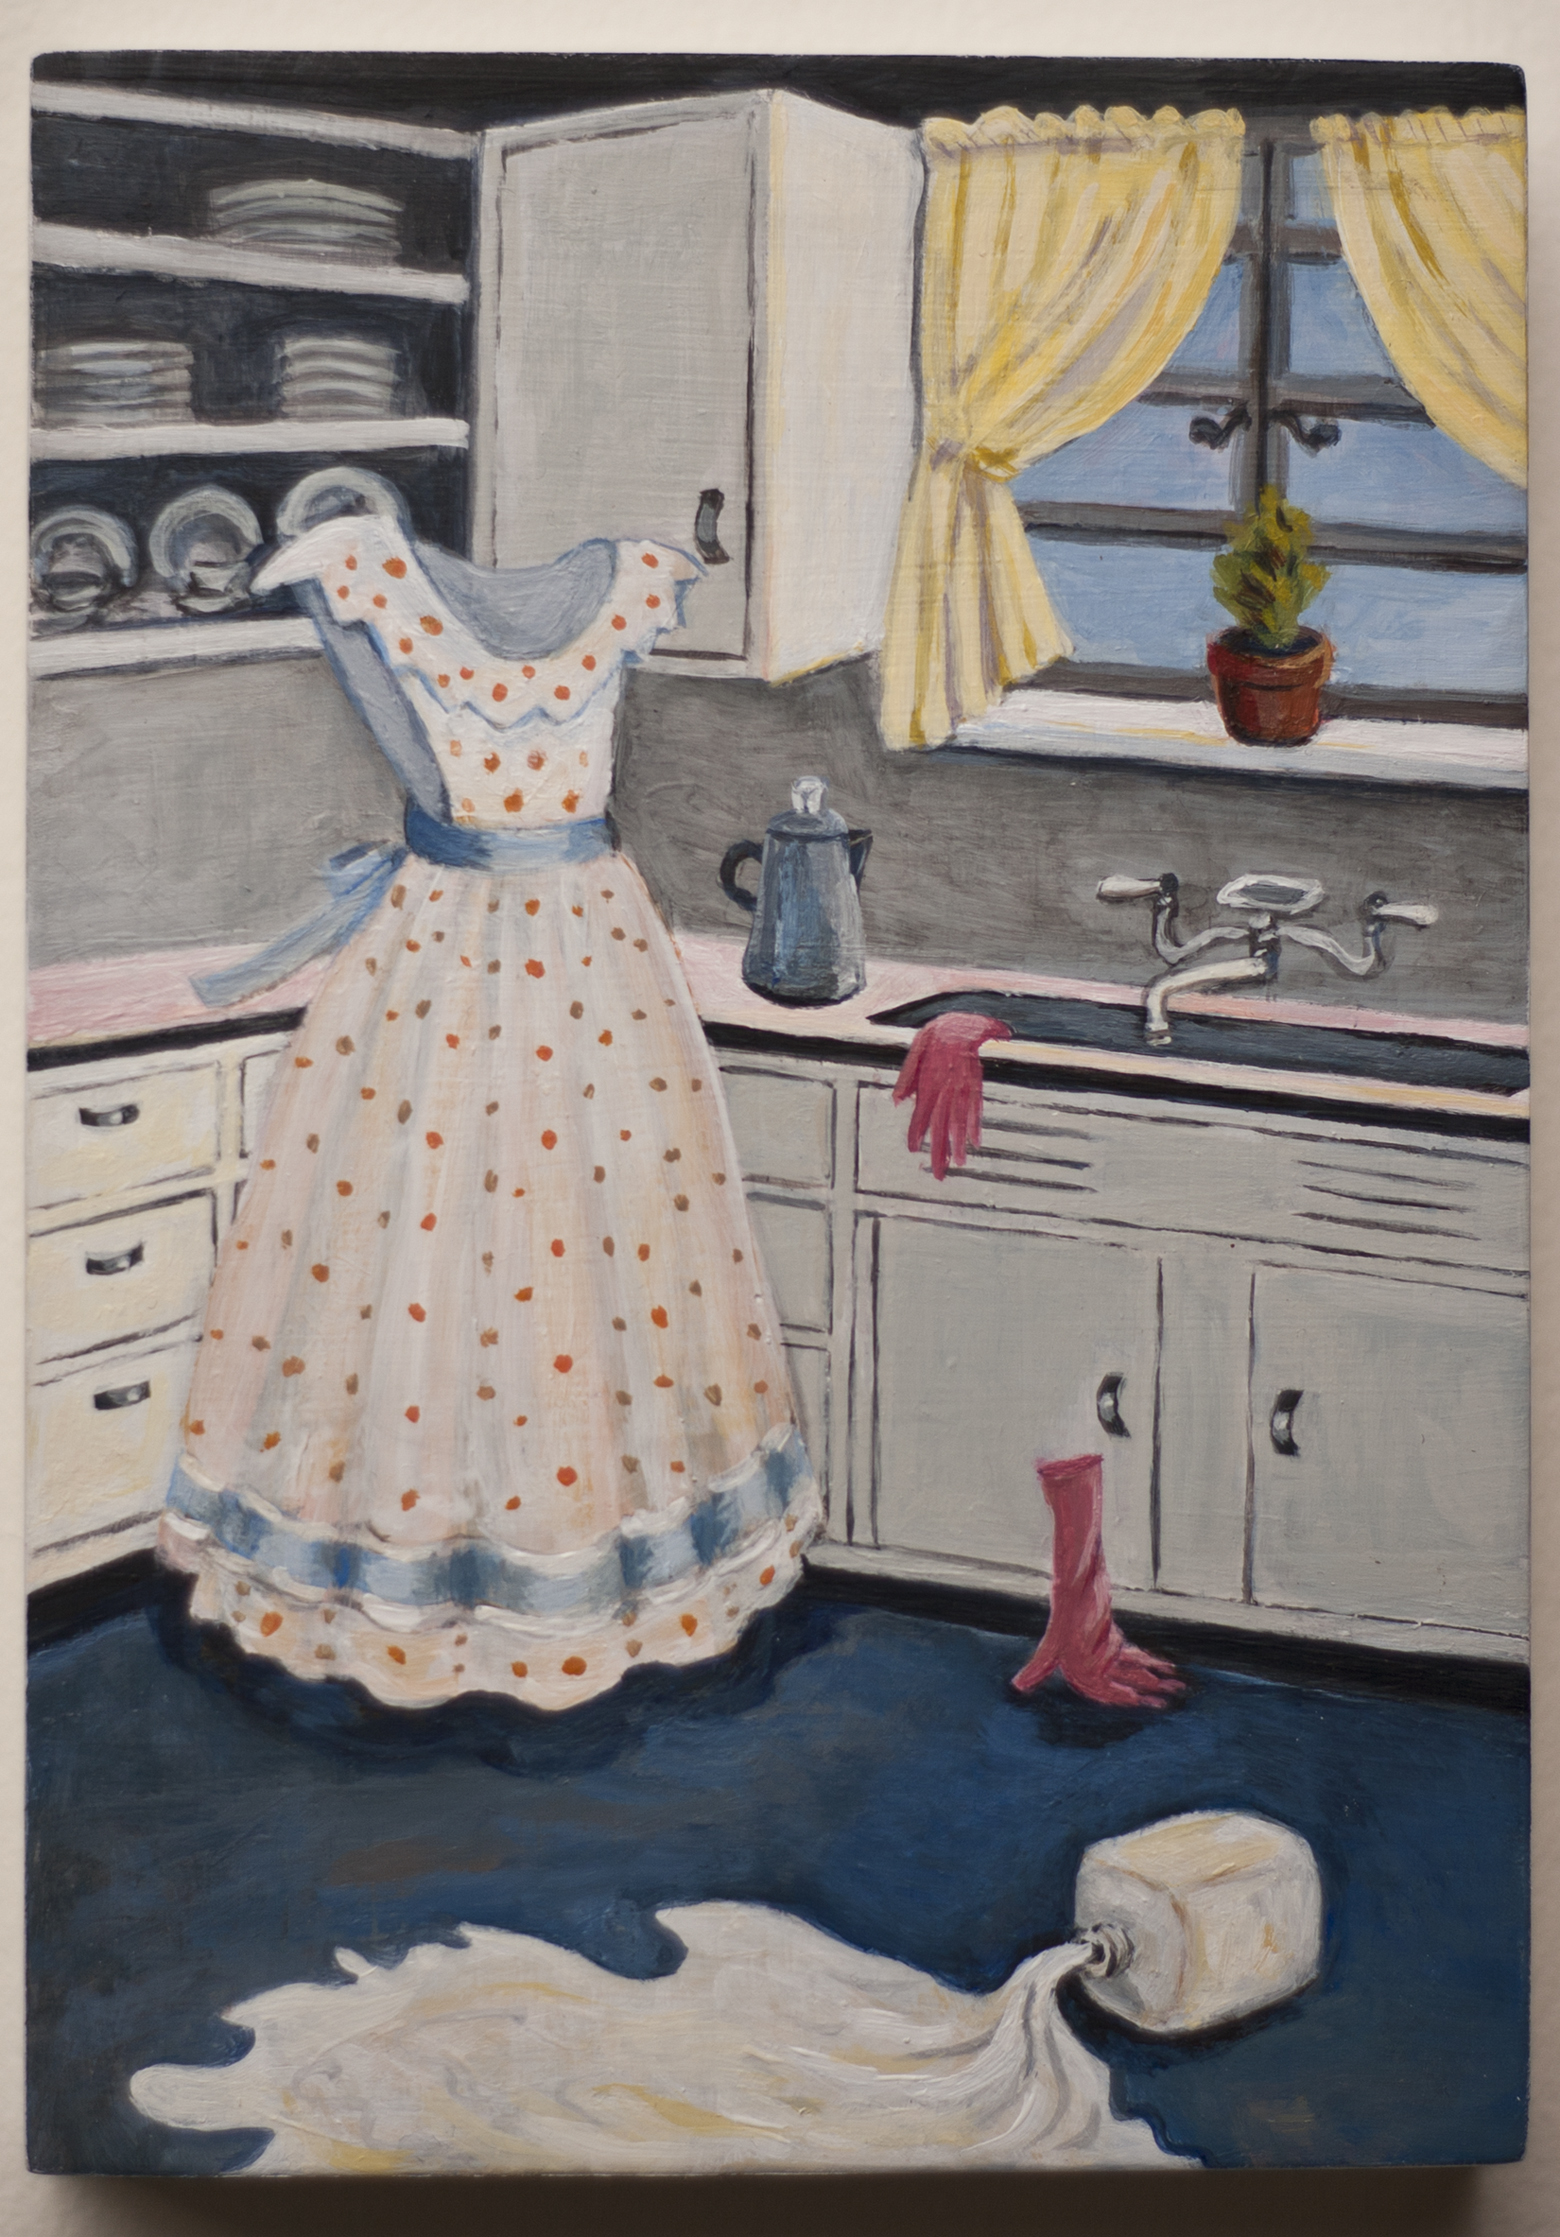 Consentino_2015_MyMother's Kitchen_acrylic on panel_5x7x.75in